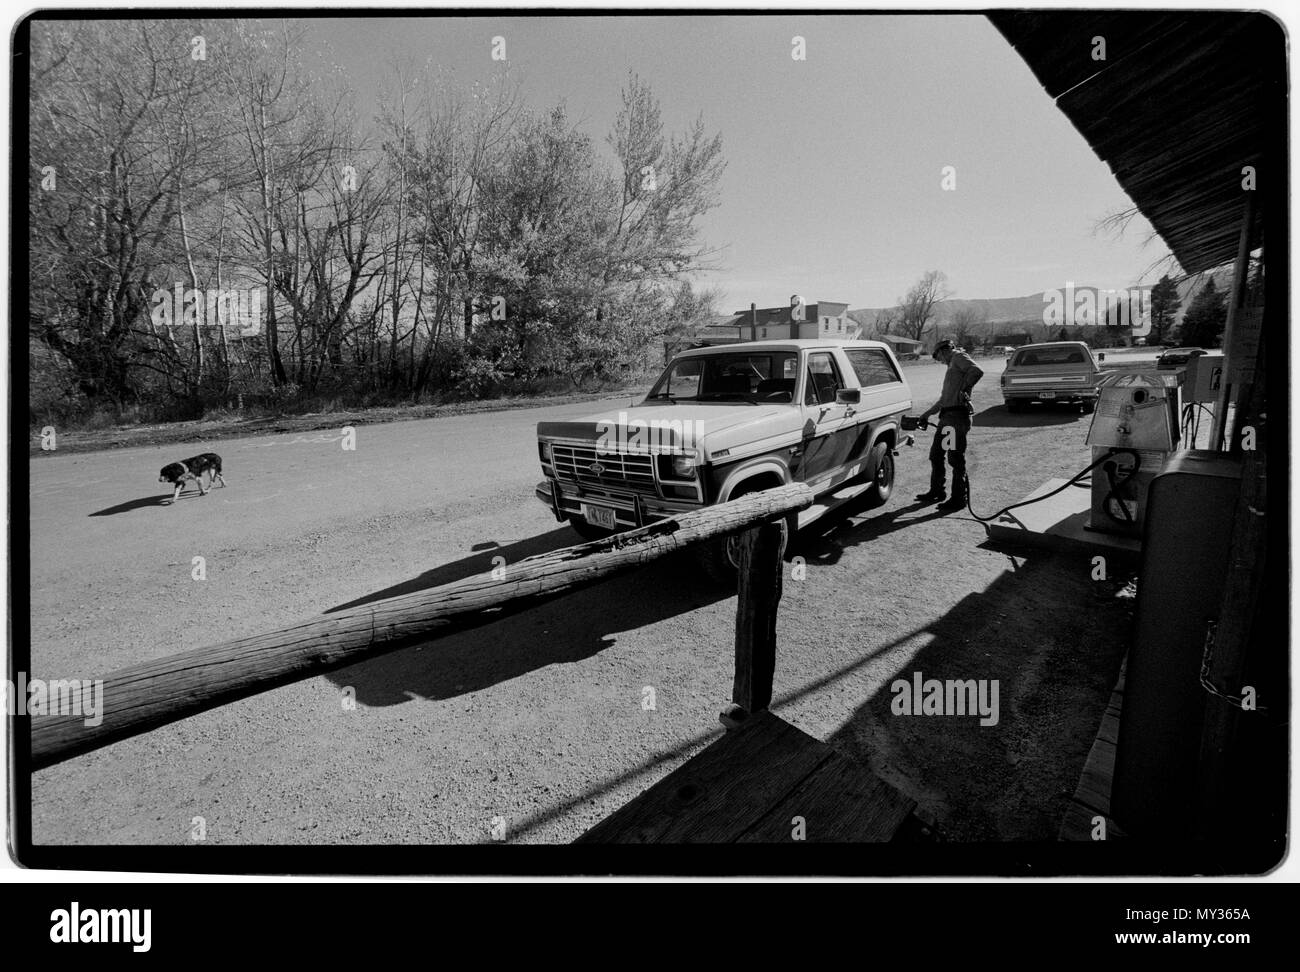 Wyoming USA 1988 Filling up a station wagon car with petrol. Filling up with fuel at small roiadside gas station. - Stock Image